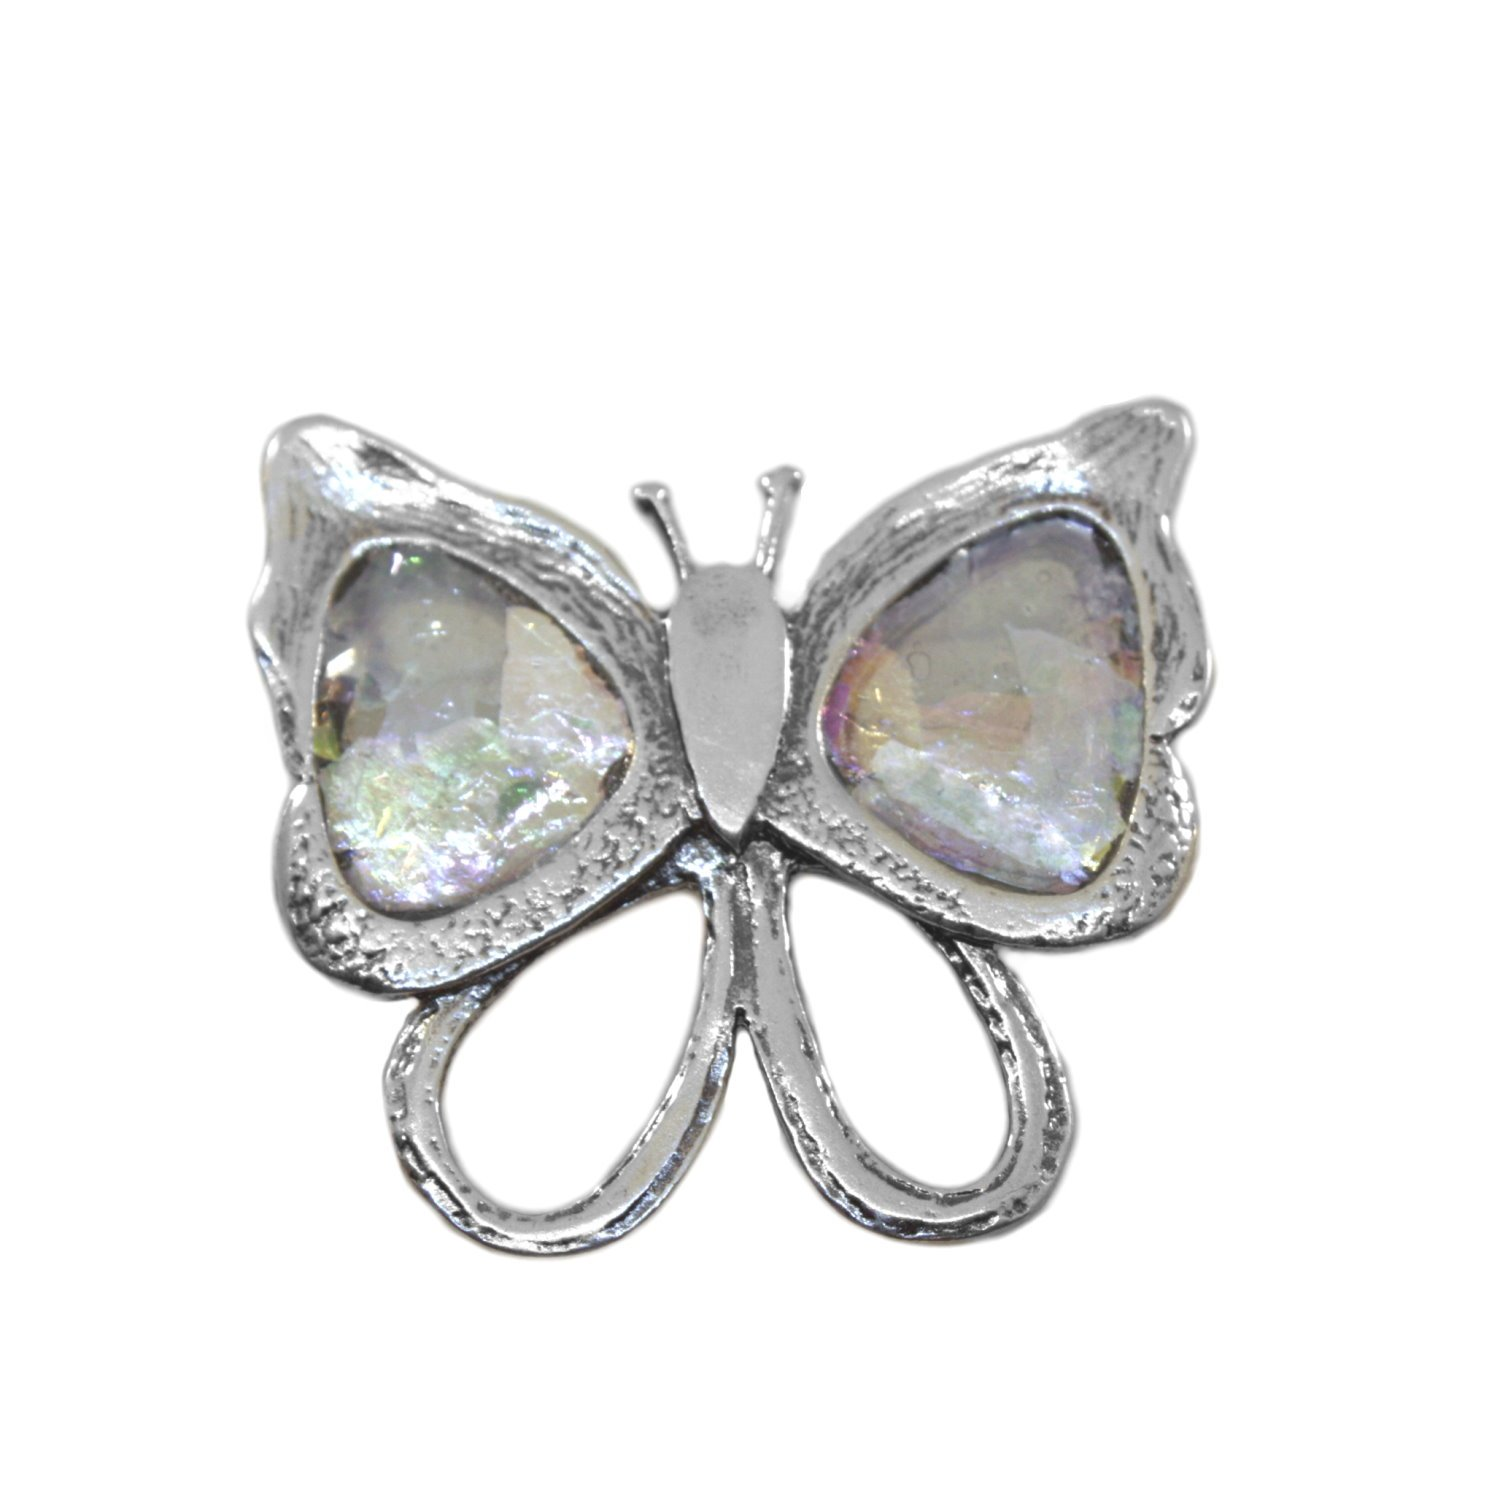 Ancient Roman Glass Multicolor Butterfly Pin or Pendant Sterling Silver by Roman Glass Company